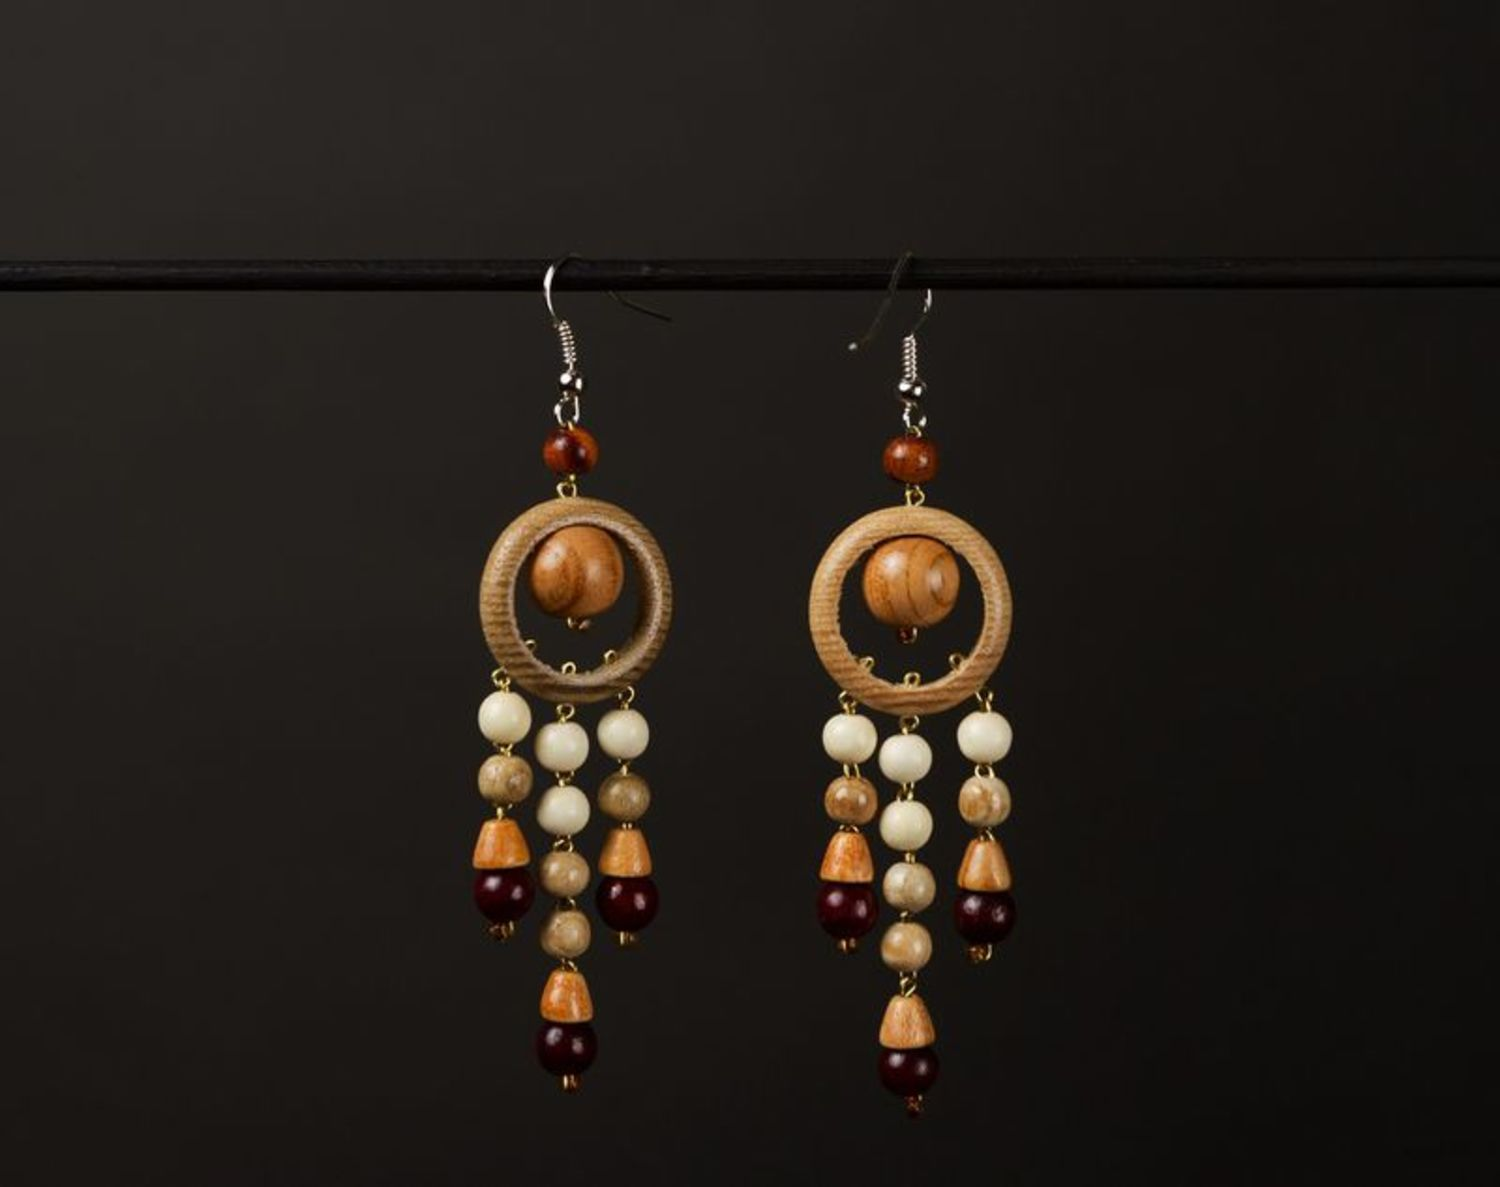 Earrings made of wood photo 1